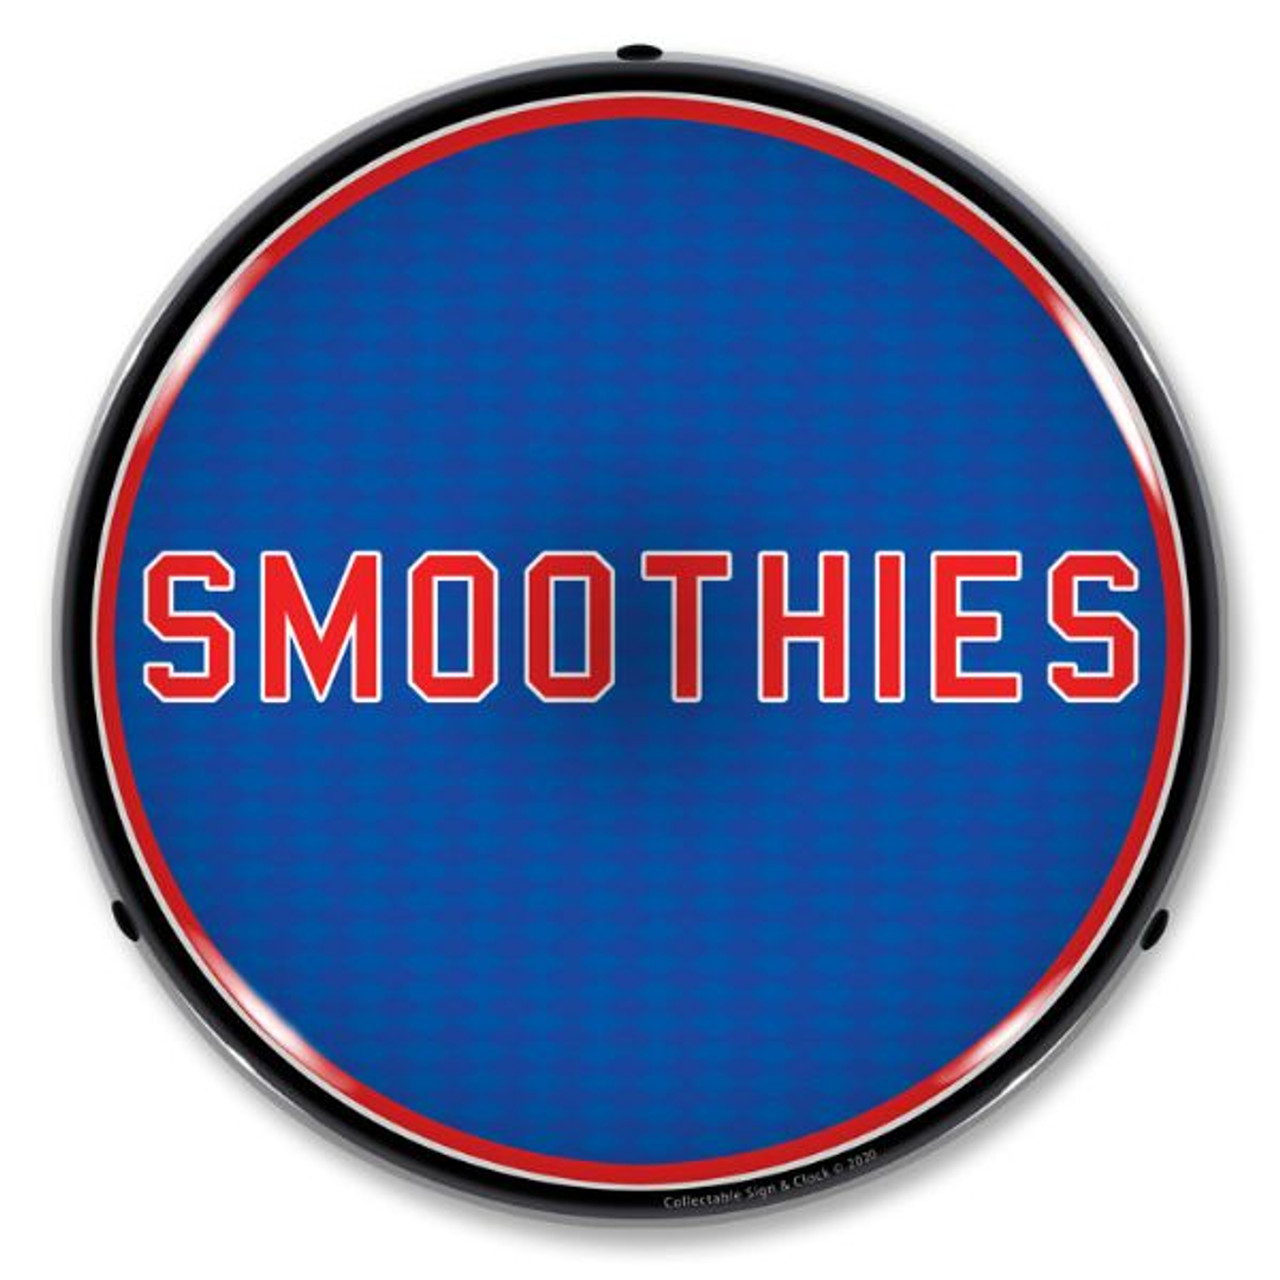 Smoothies LED  Lighted Business Sign 14 x 14 Inches